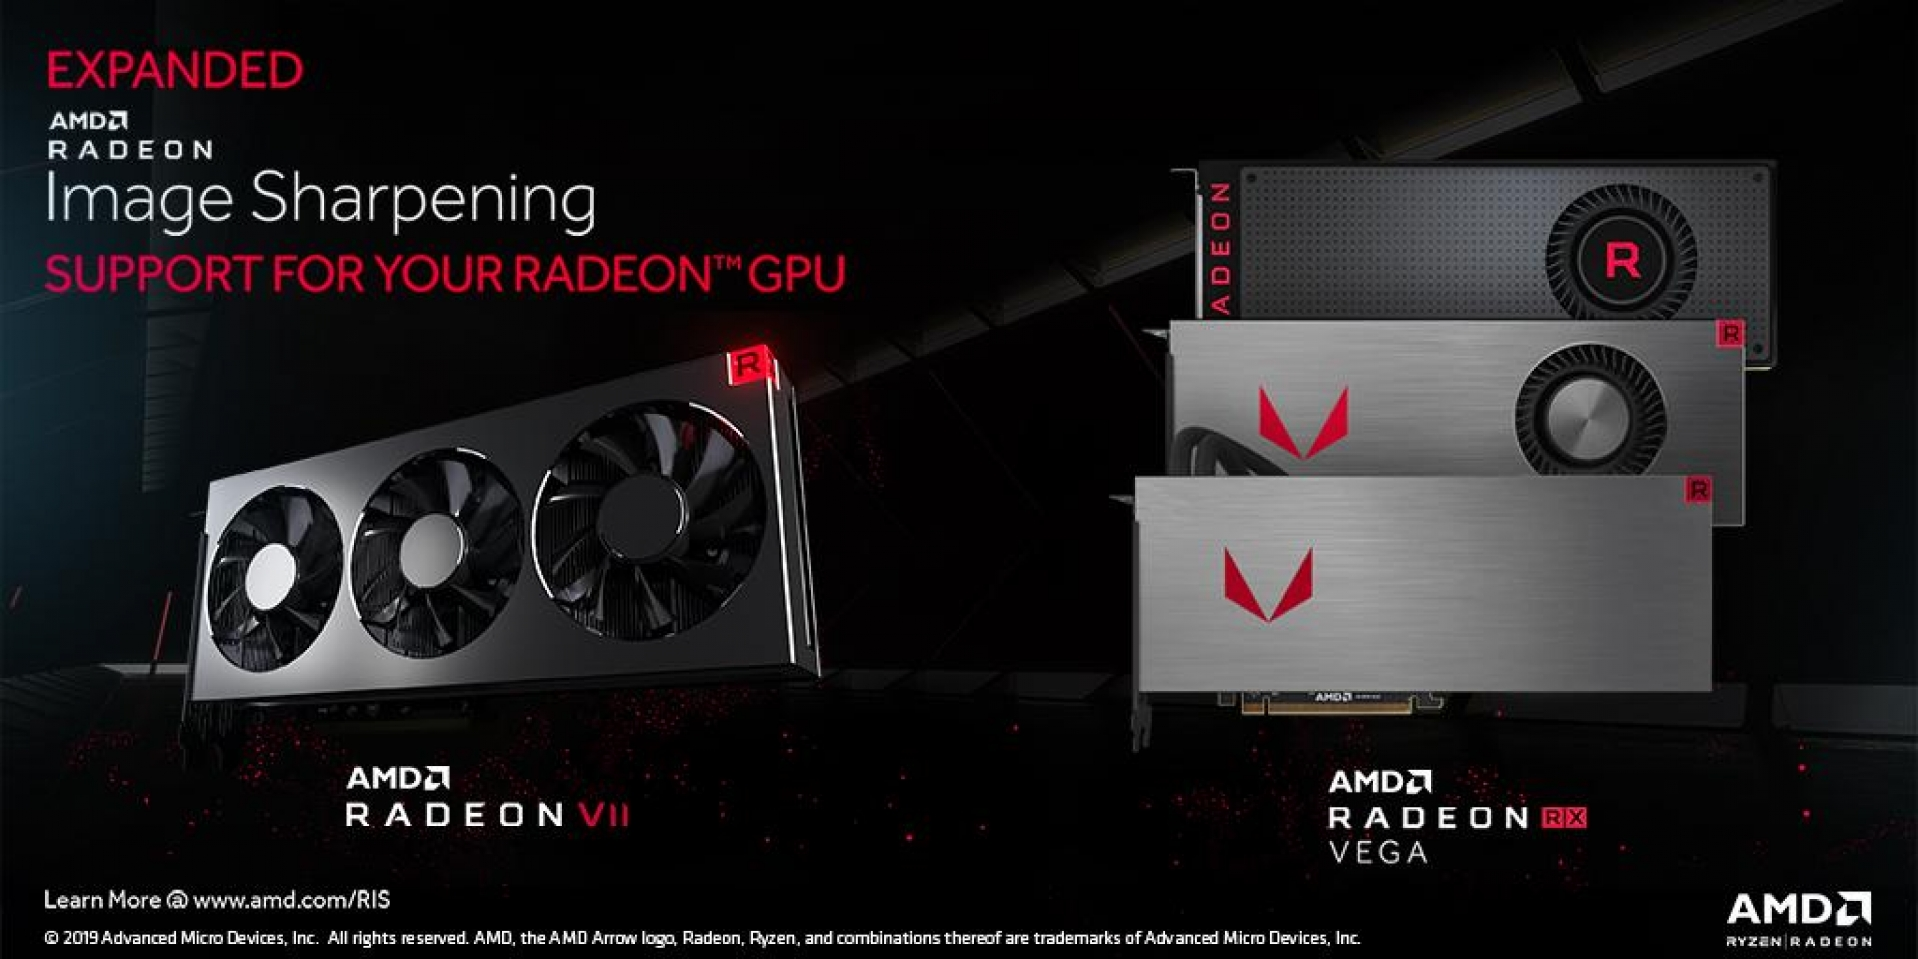 Amd S Radeon Image Sharpening Is Coming To Vega Oc3d News